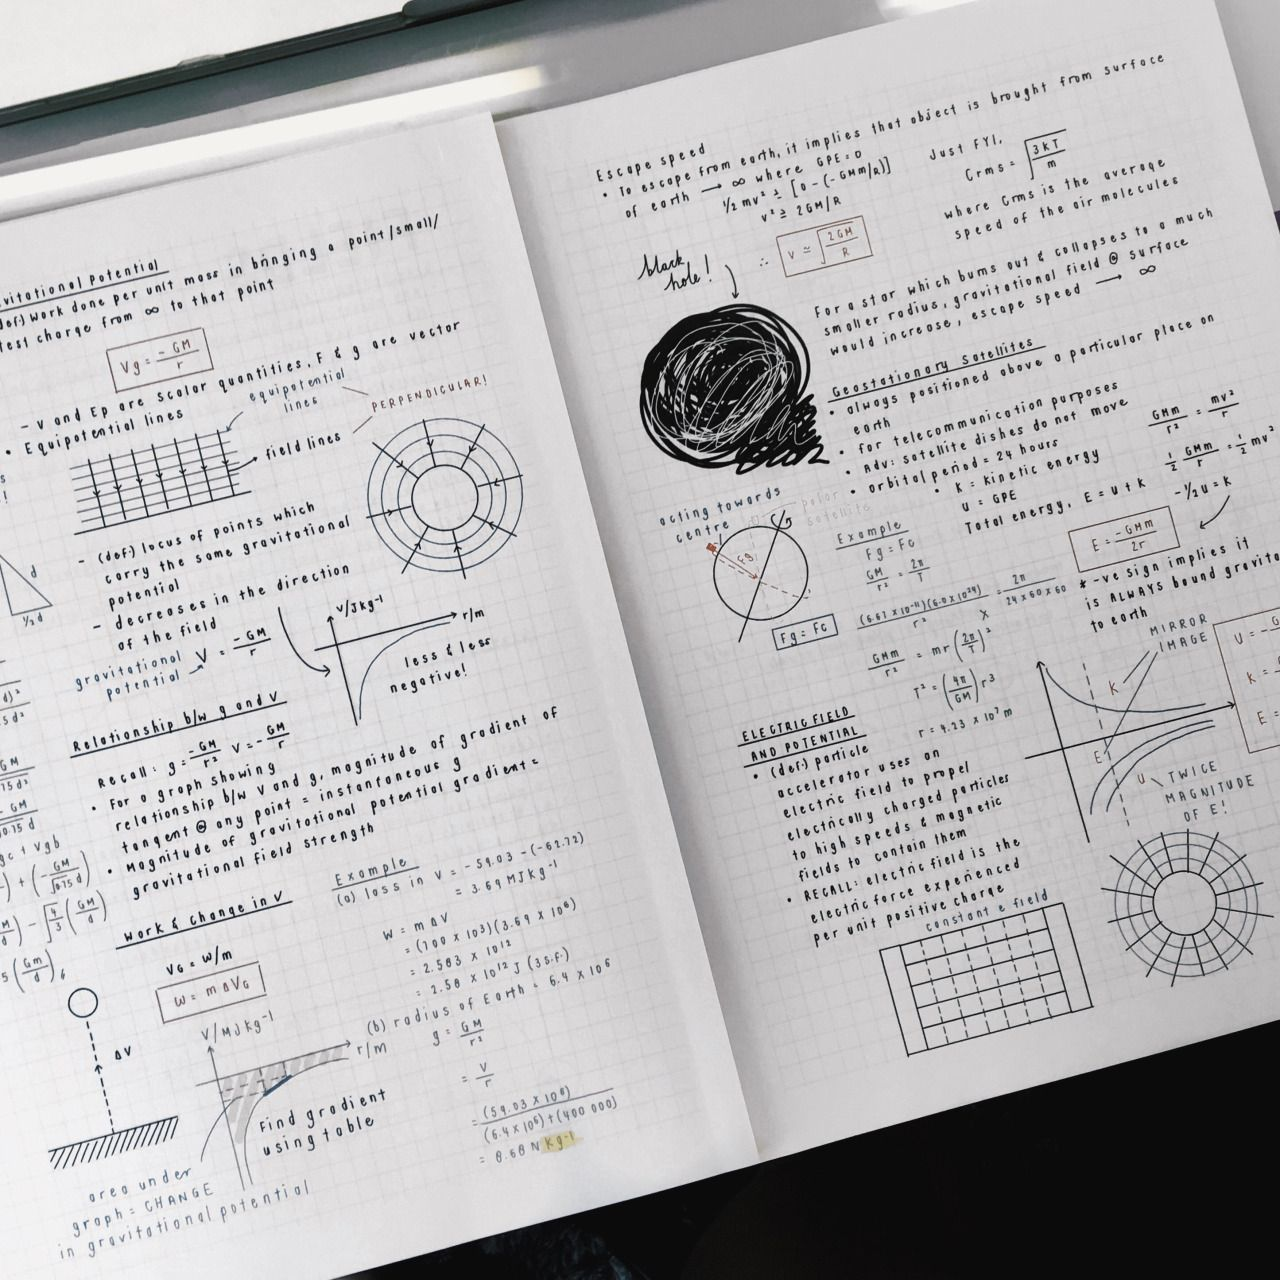 Go study now sushi studies class notes for physics